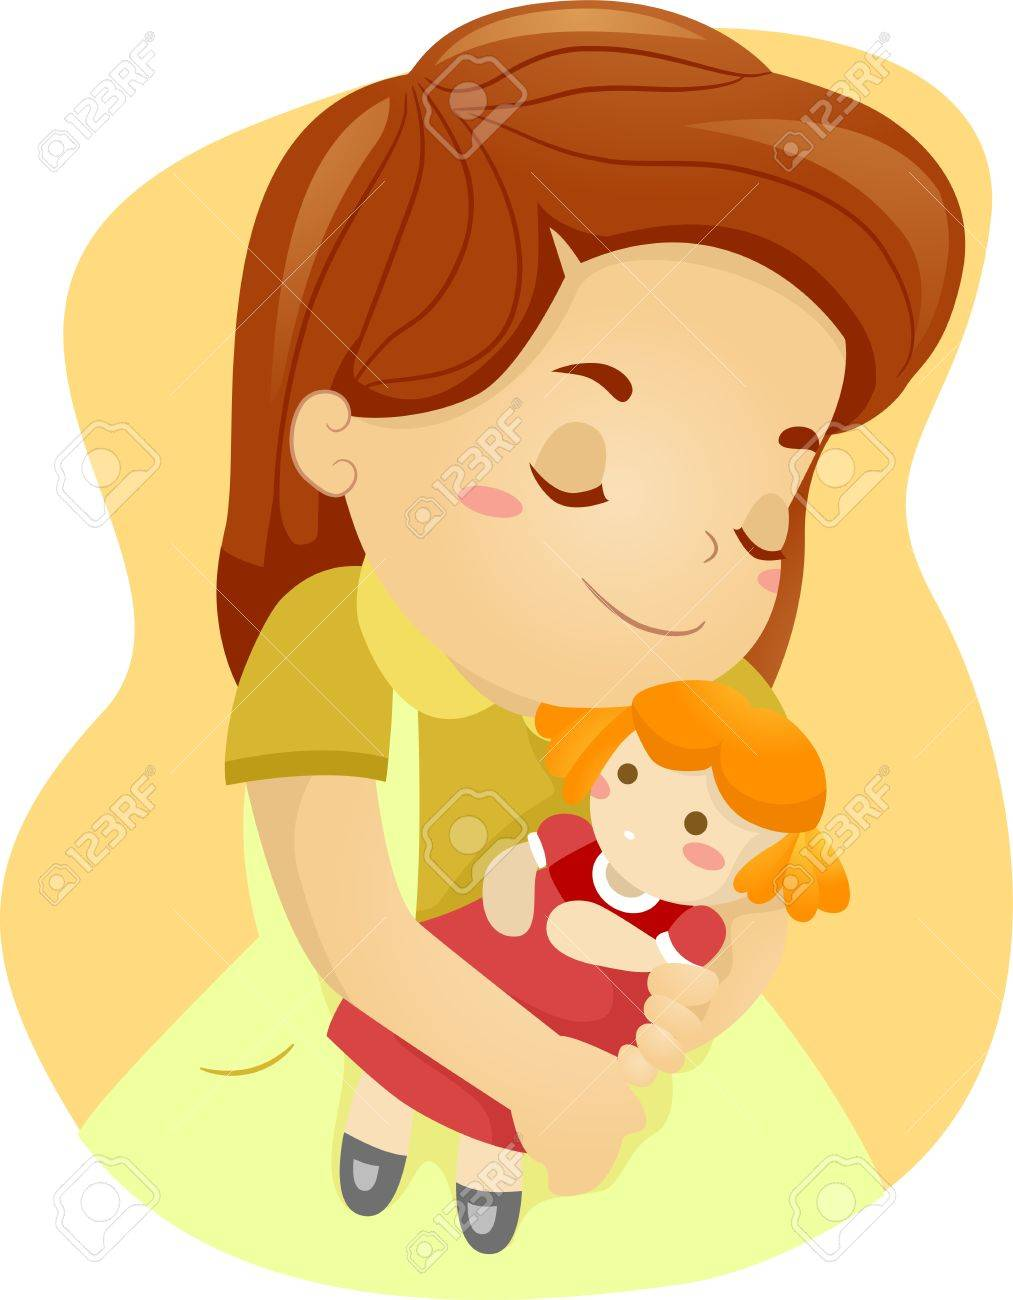 Illustration Of A Kid Hugging Her Doll Stock Photo, Picture And ...